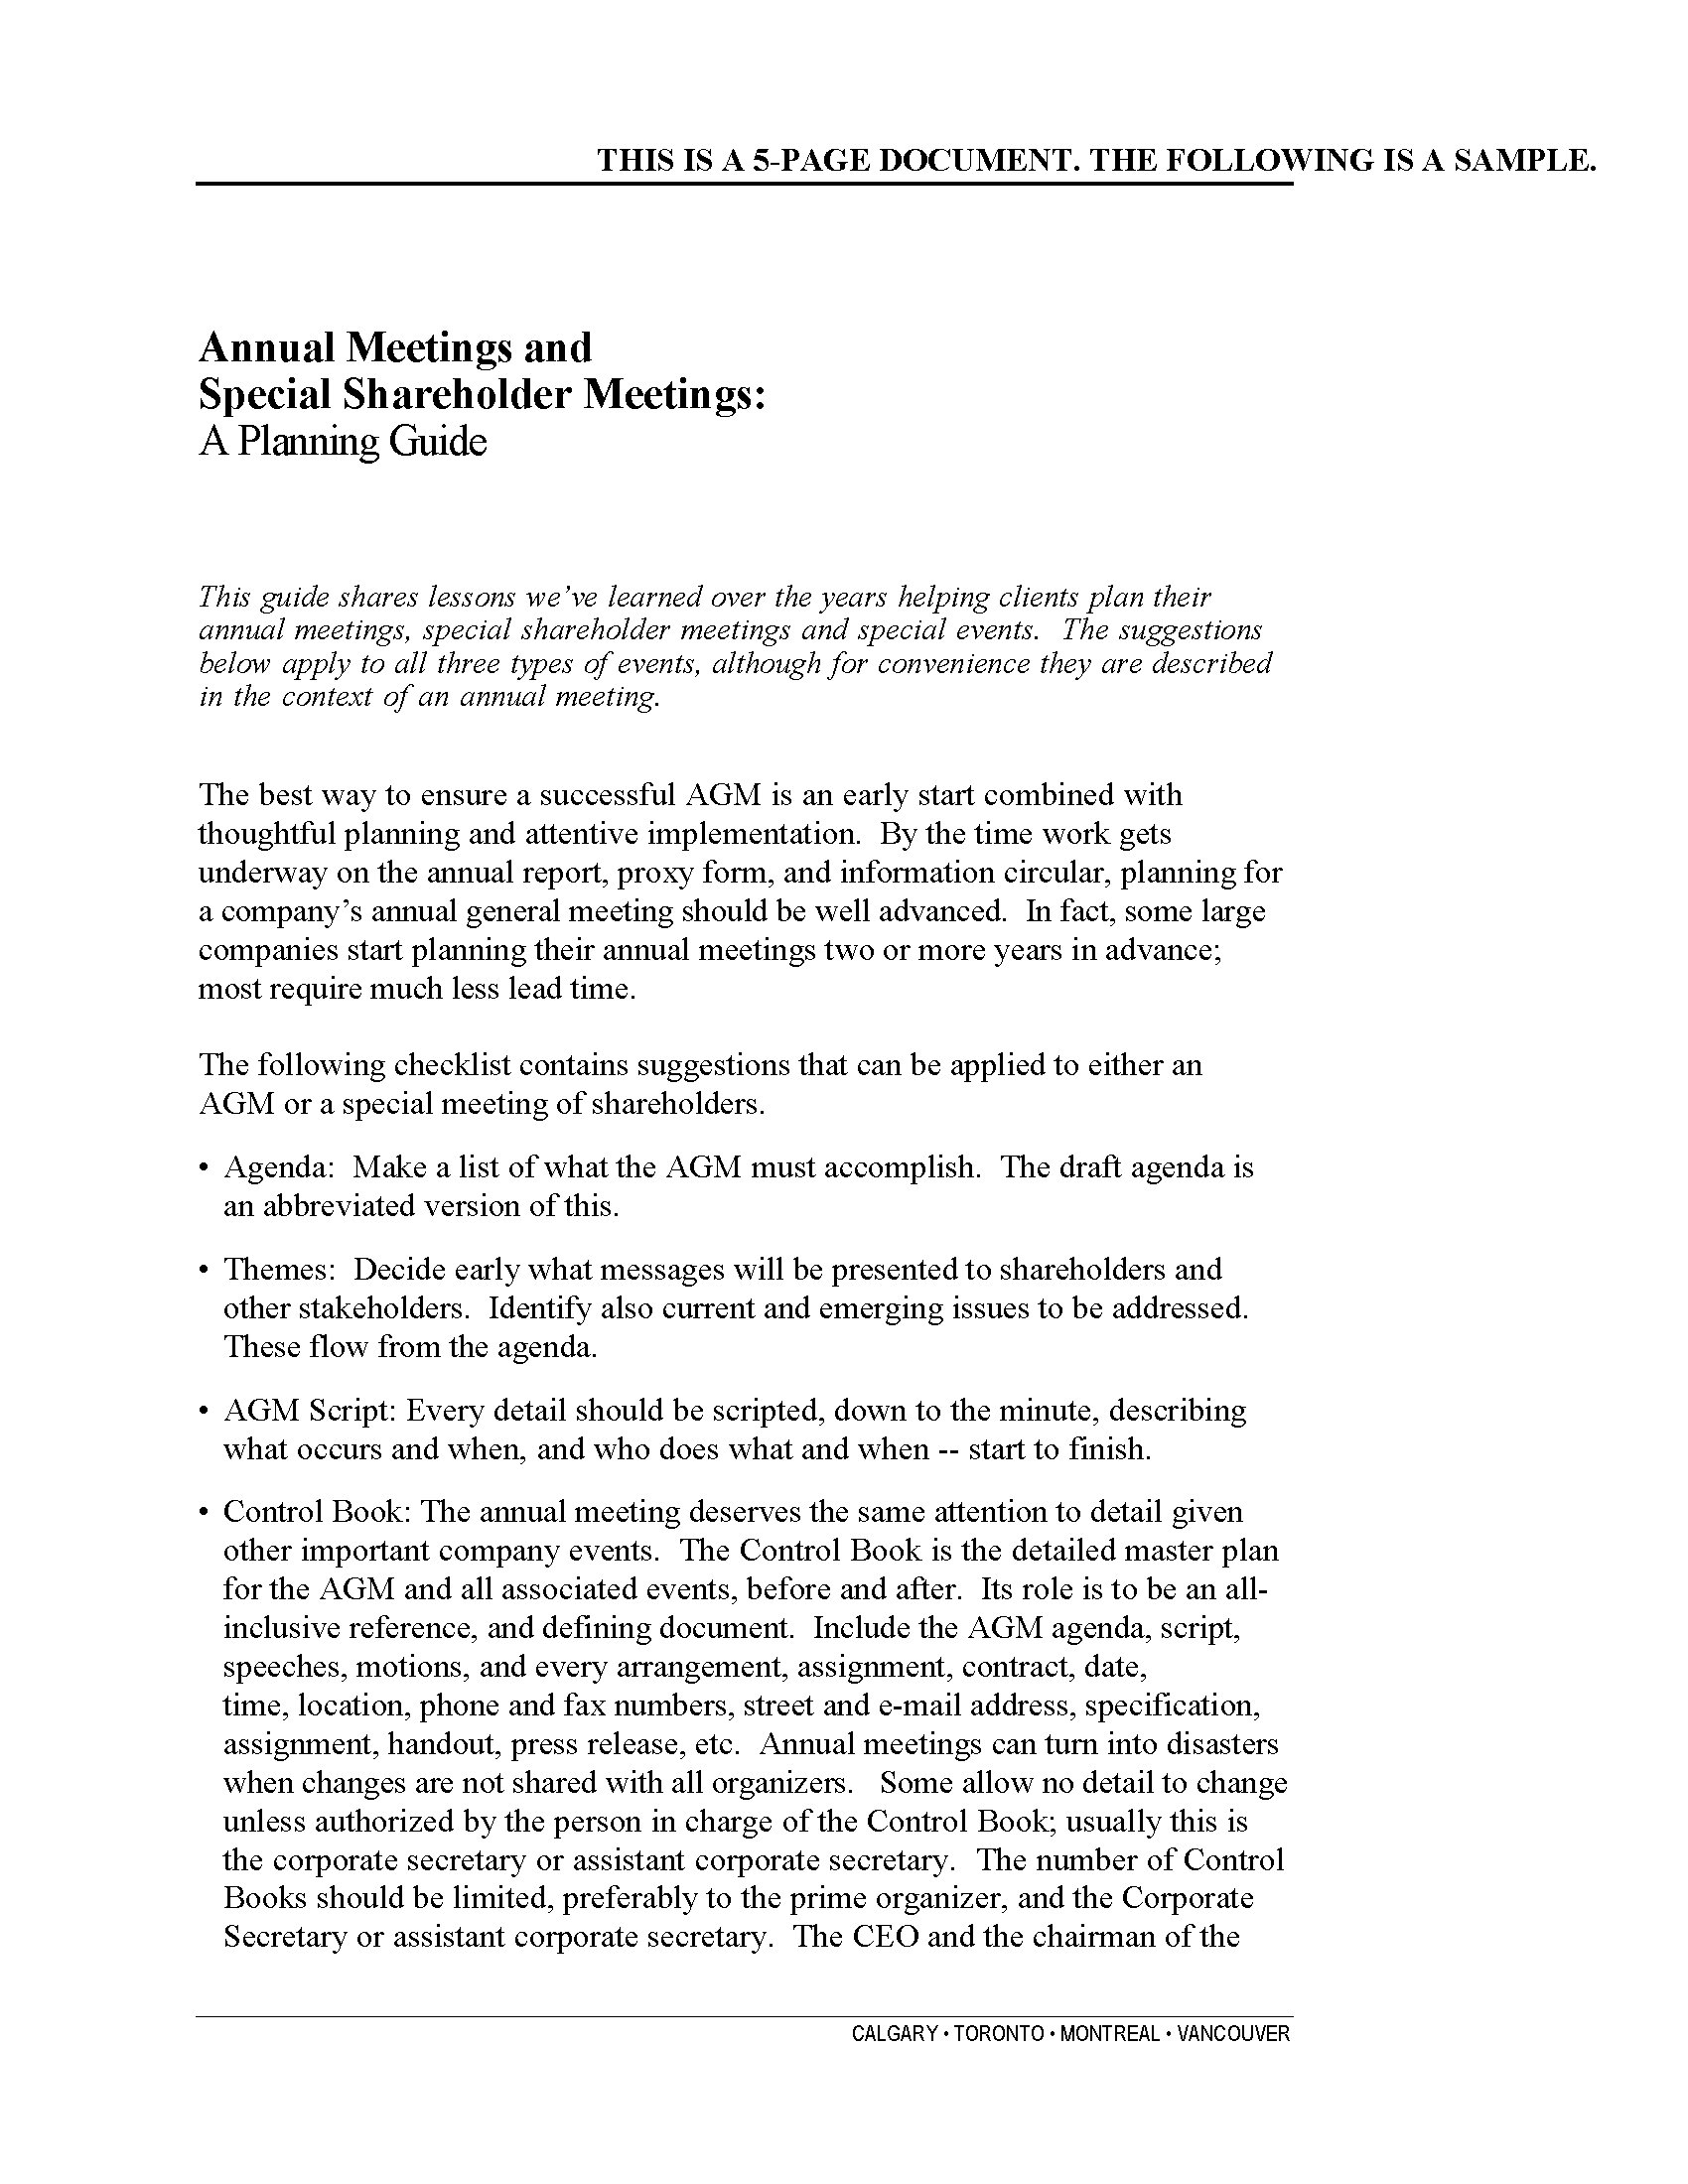 Annual Meetings and Special Shareholder Meetings: A Planning Guide ...